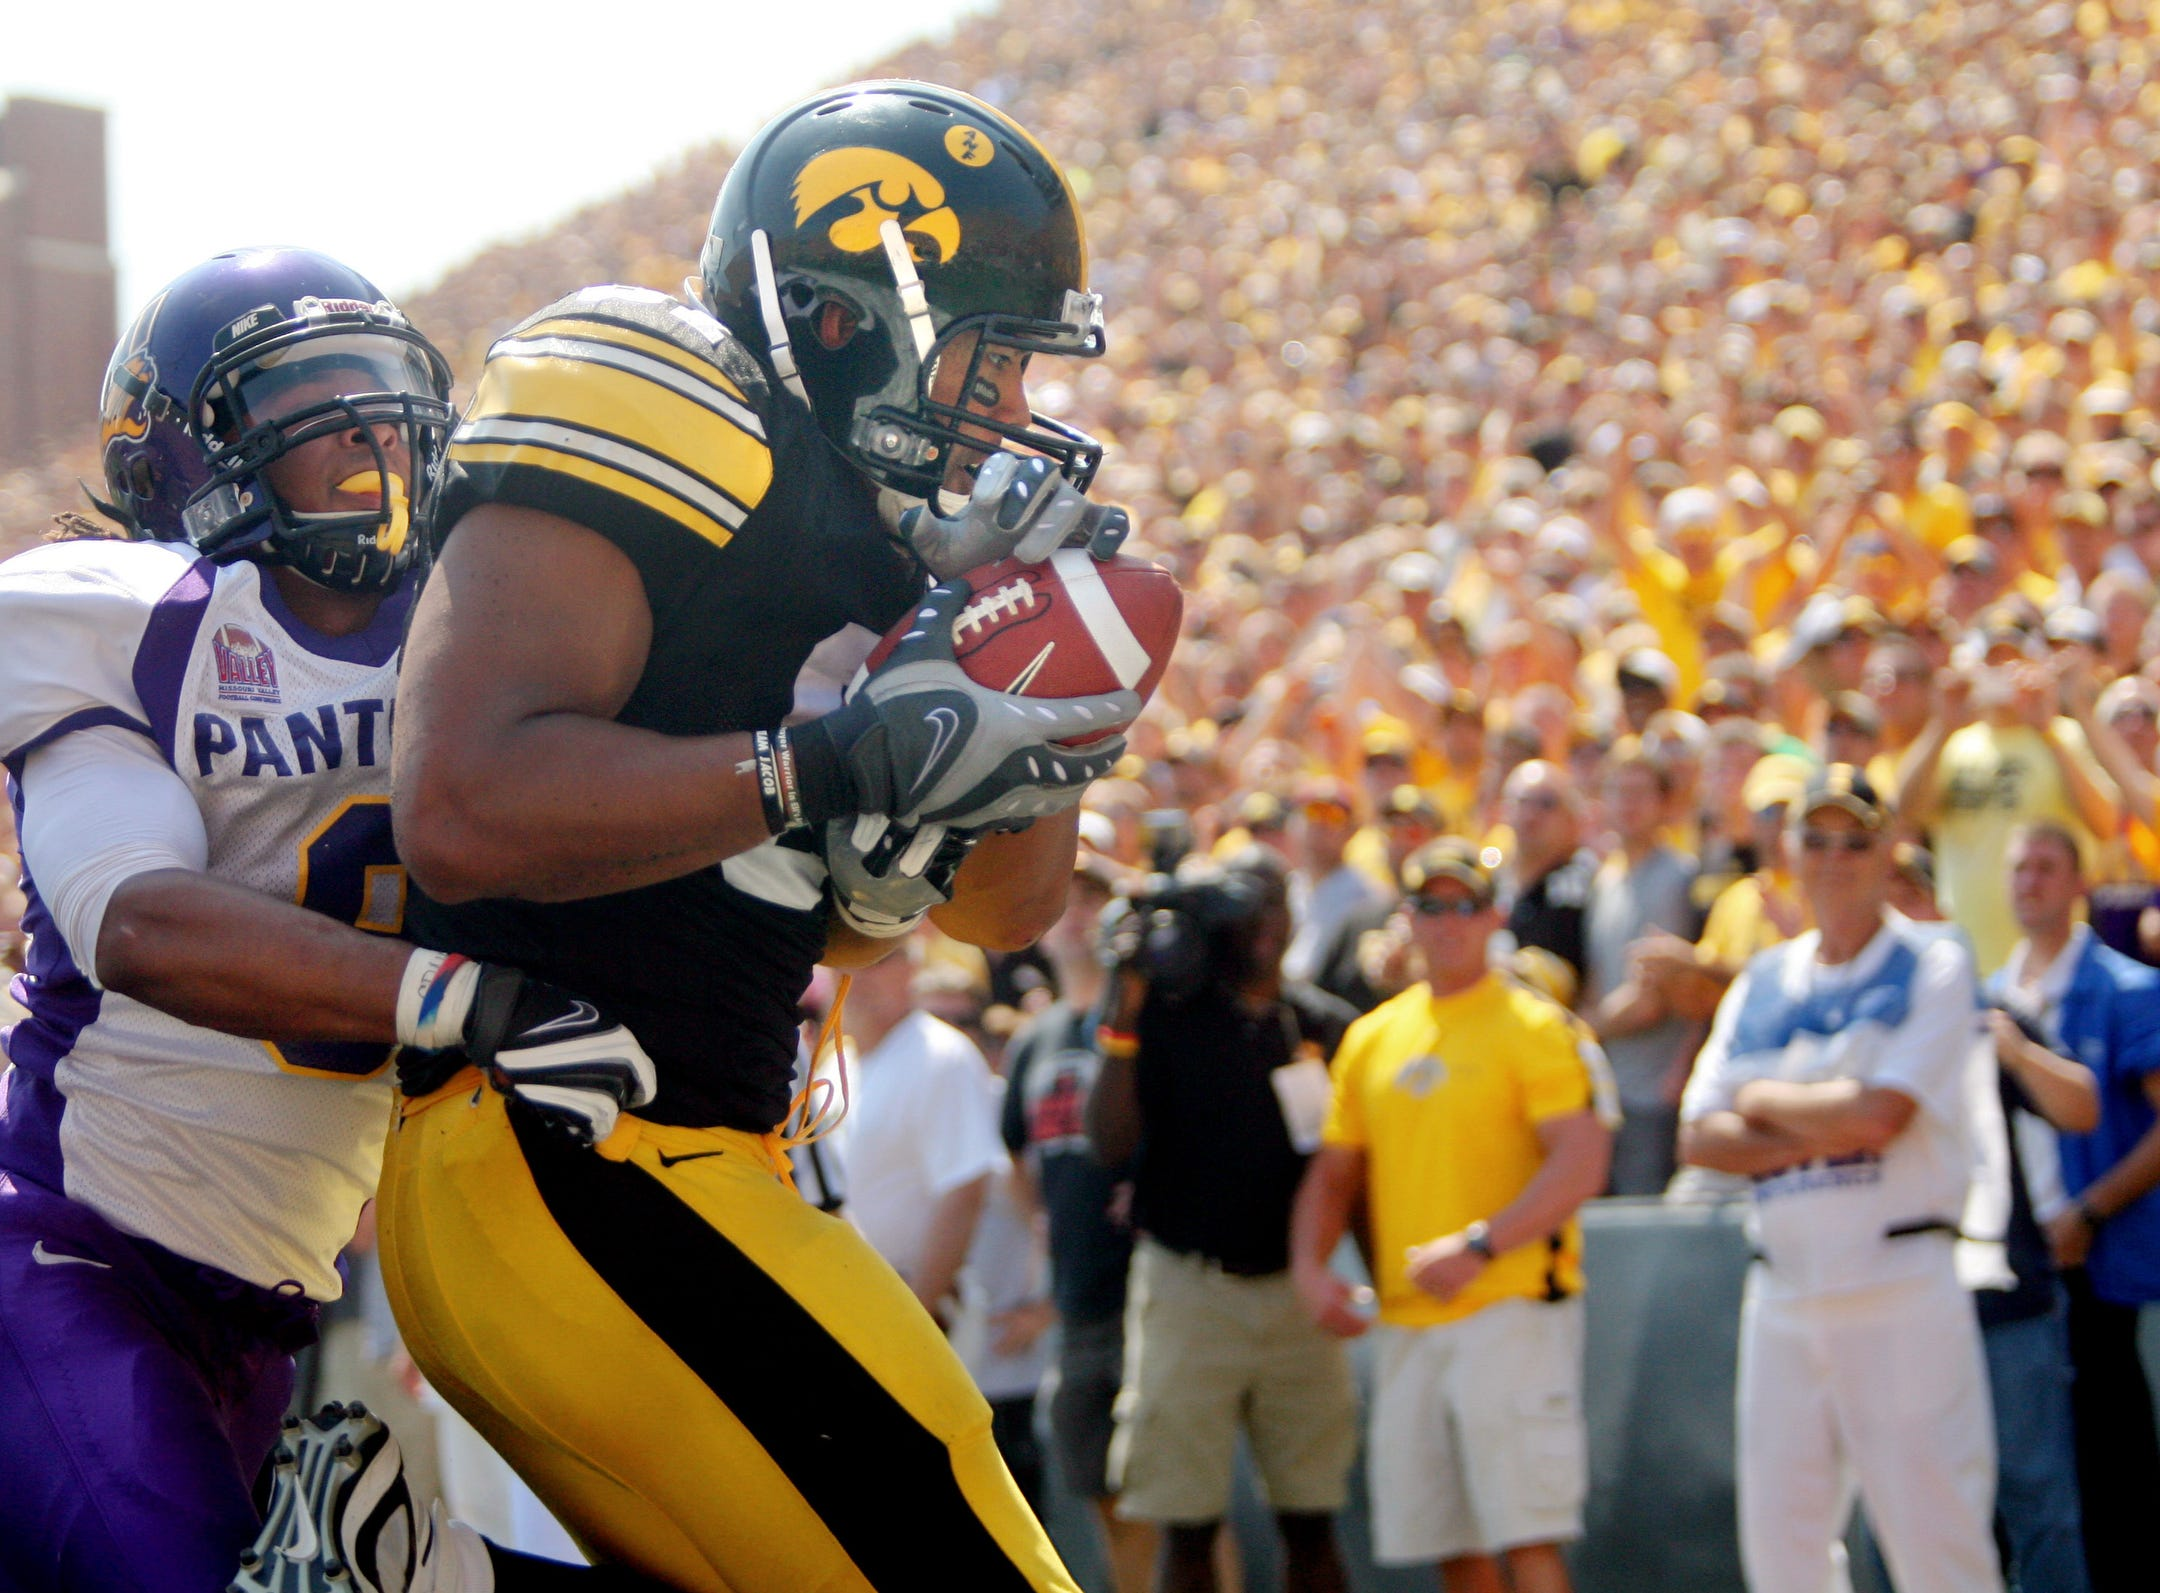 Iowa tight end Tony Moeaki (81) catches a fourth quarter touchdown pass over Northern Iowa cornerback Andre Martin (8) Sept. 5, 2009 in Iowa City.